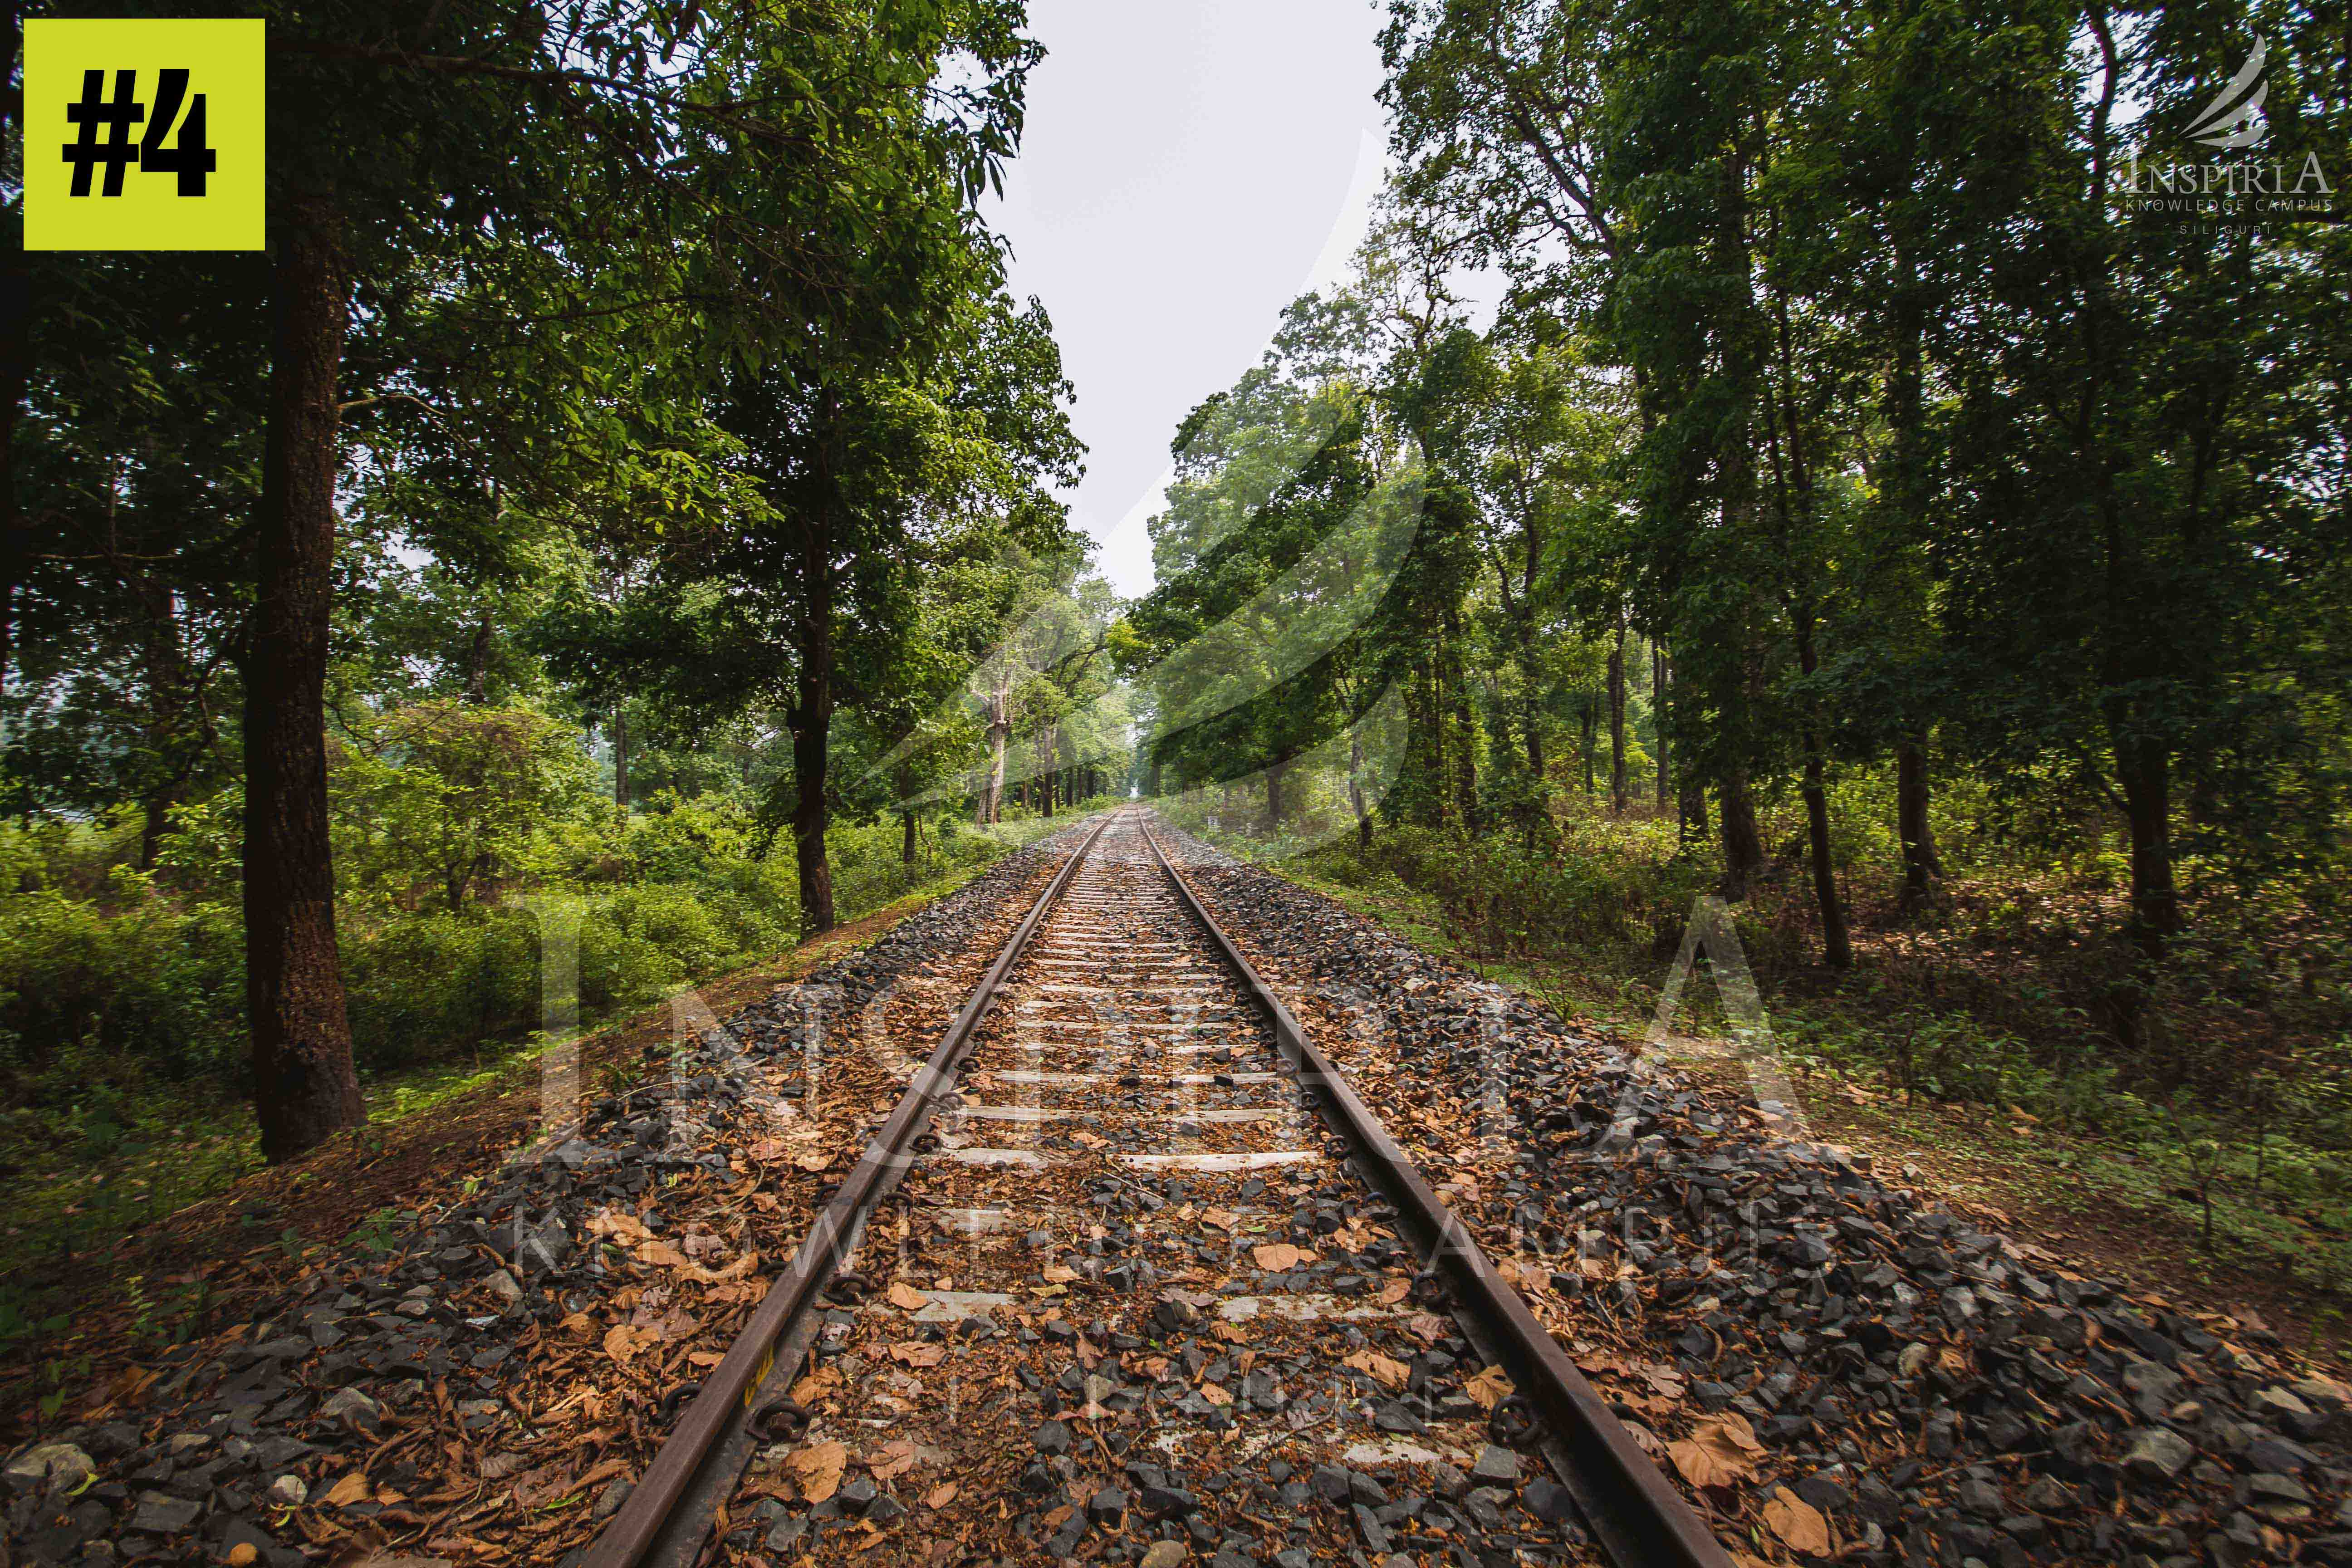 lataguri train line towards Bangladesh